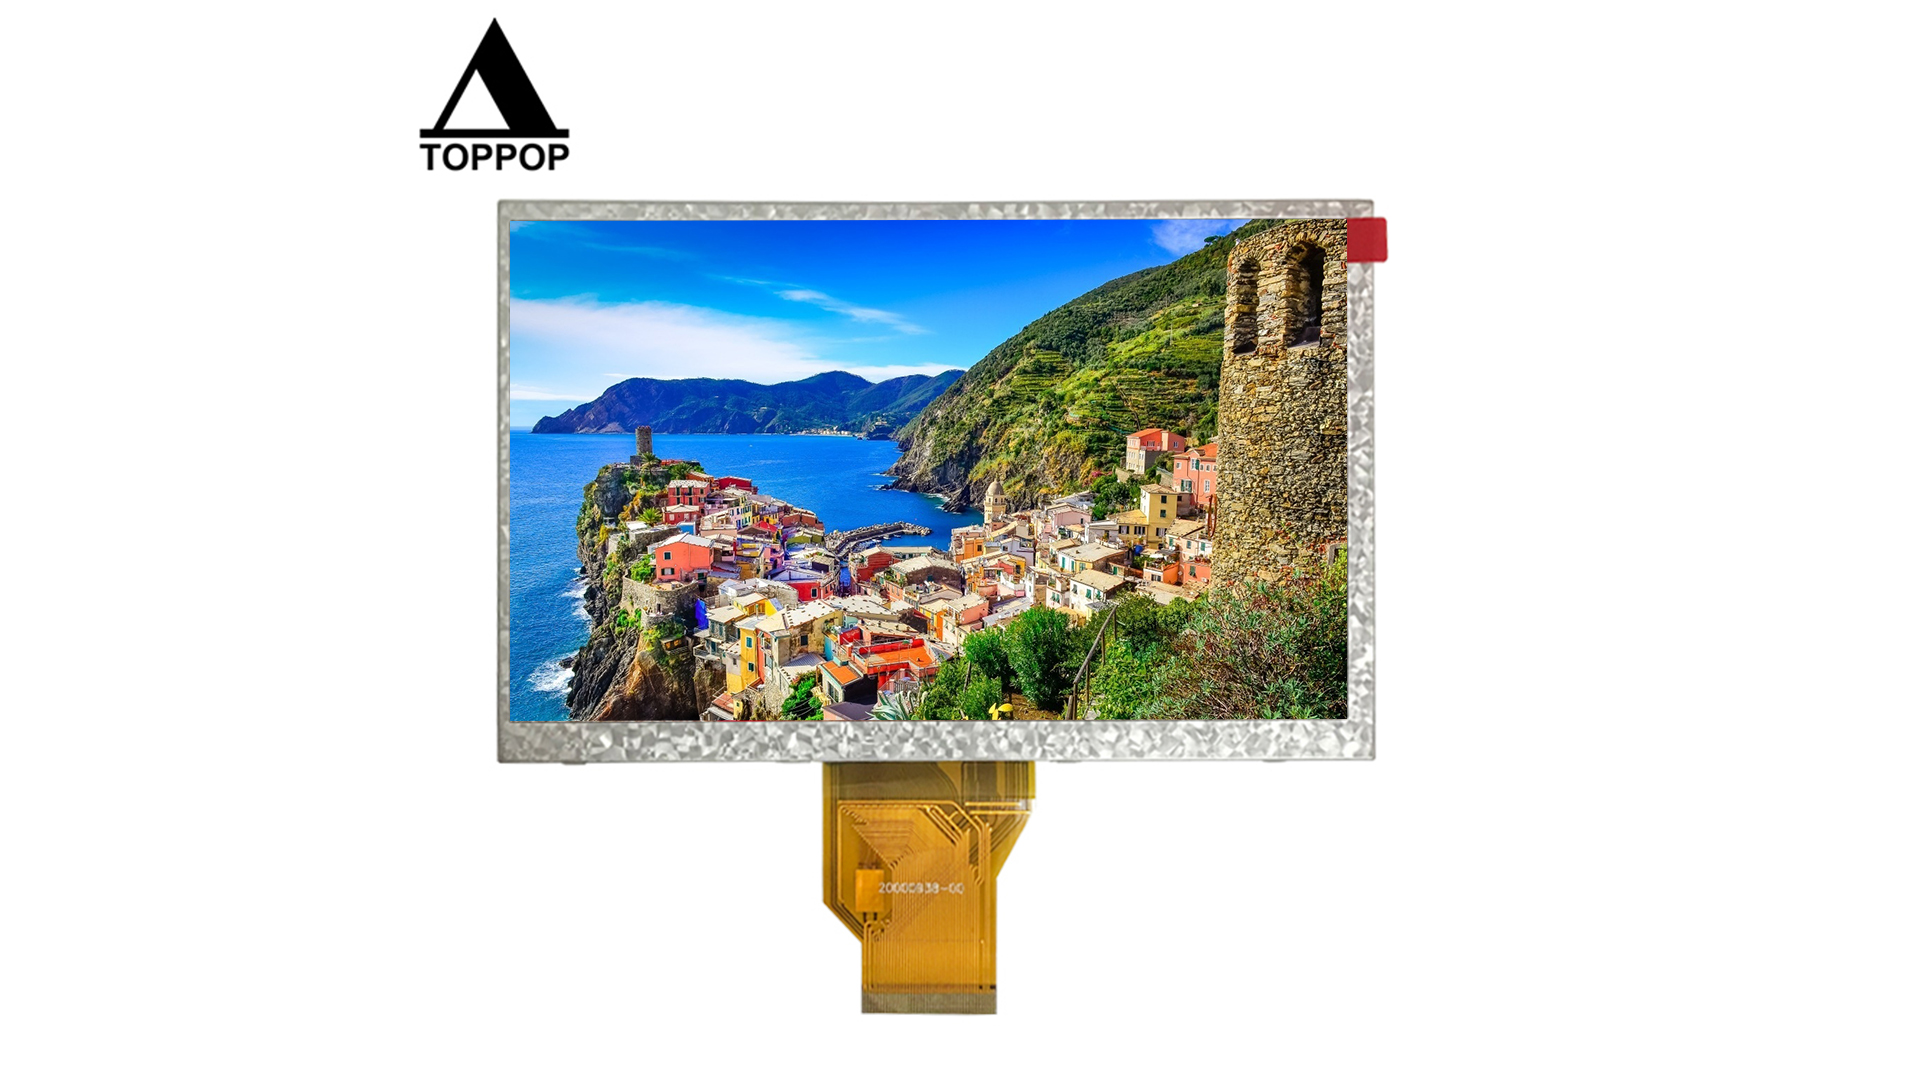 """7 inch 800*480 Digital LVDS TFT LCD Display 7.0"""" LCM Module with Resistive Capacitive LCD Module Touch Screen Panel CTP Optional 50 Pin FPC Low Cost LCD Modules Manufacturer toppoplcd"""